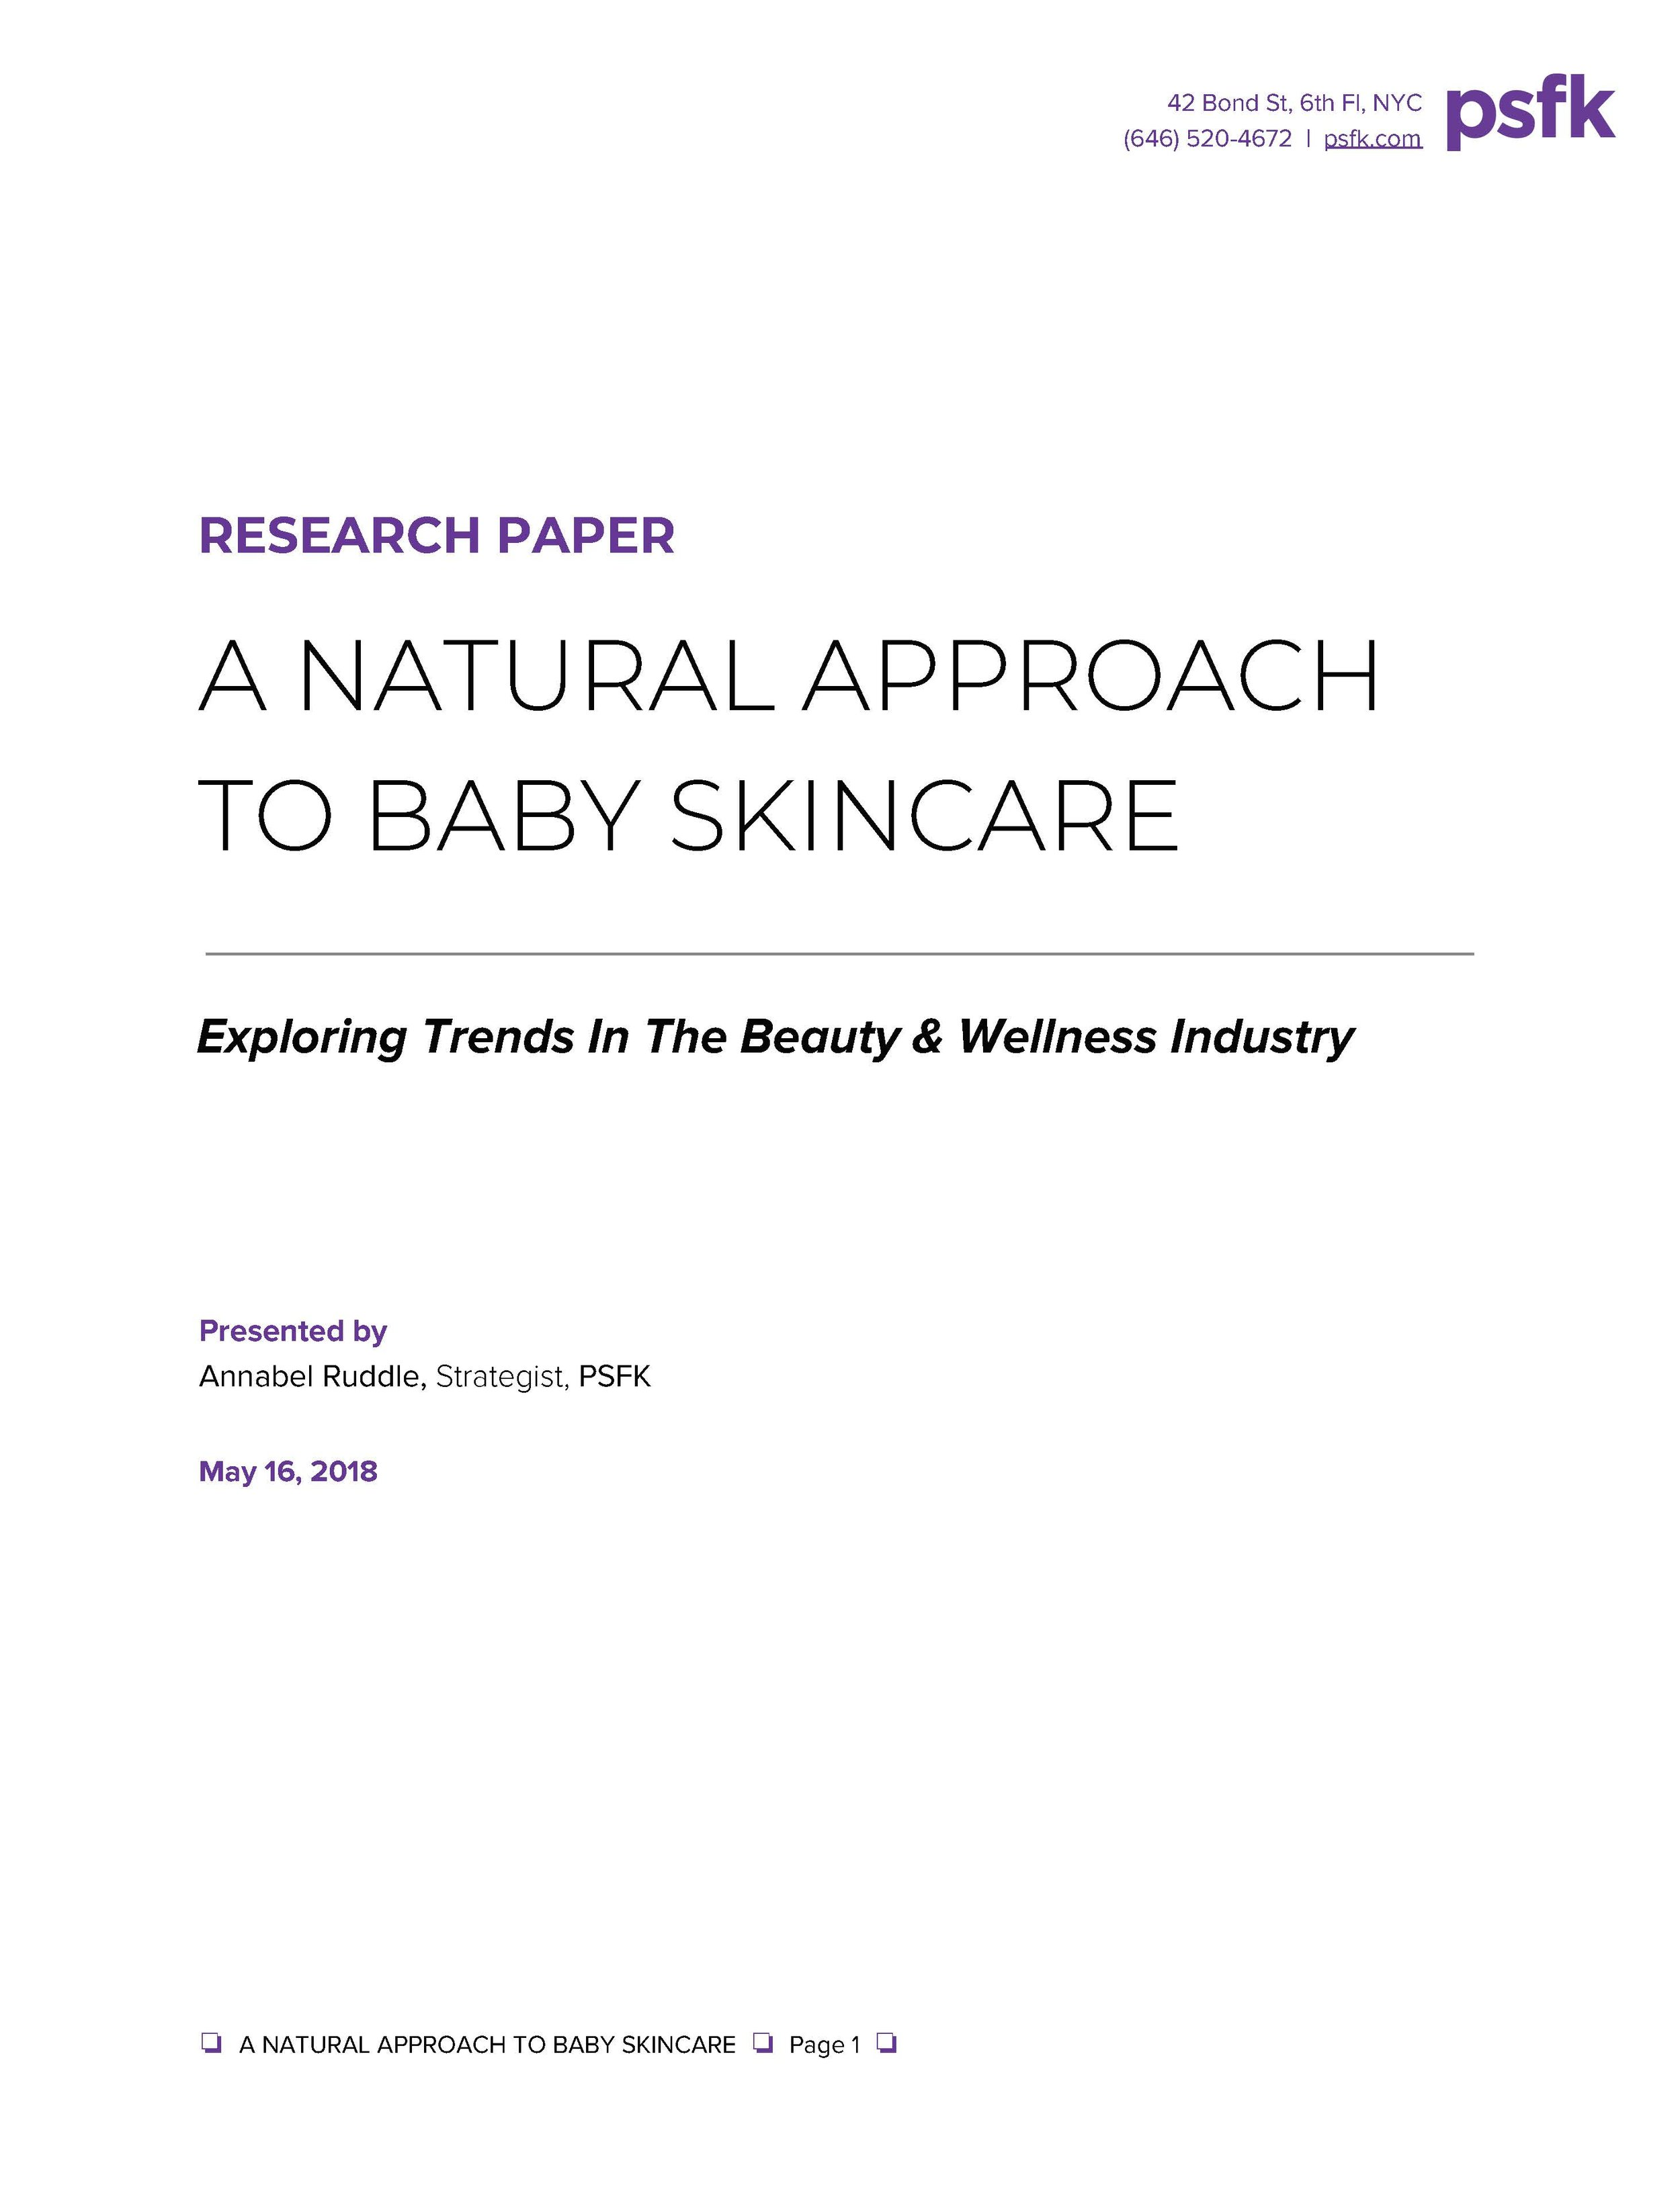 PSFK_Paper_Natural_Approach_Baby_Skincare_Page_1.jpg